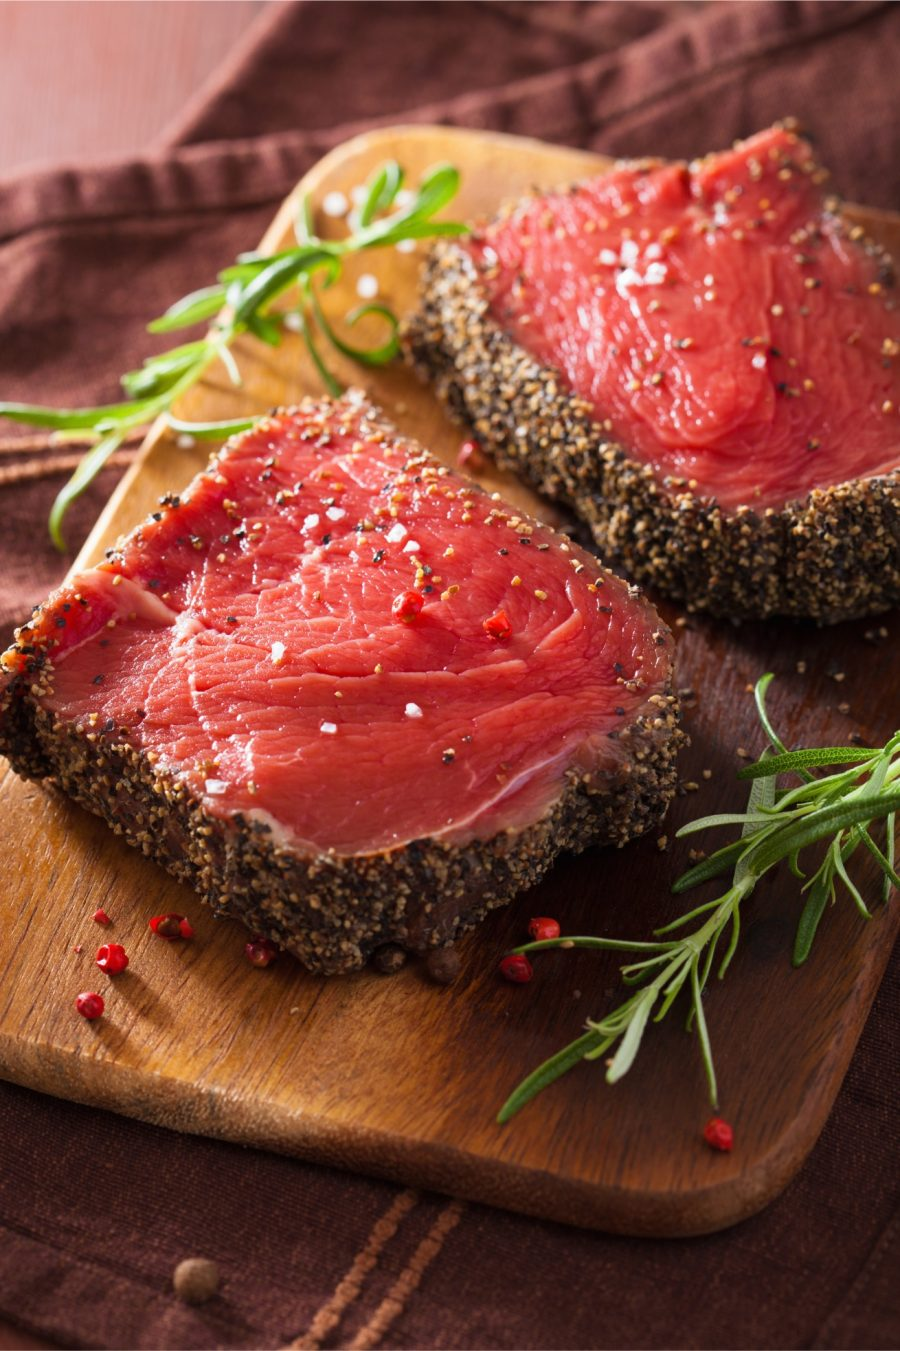 raw-beef-steak-with-spices-and-rosemary-on-wooden-PYKY6QV